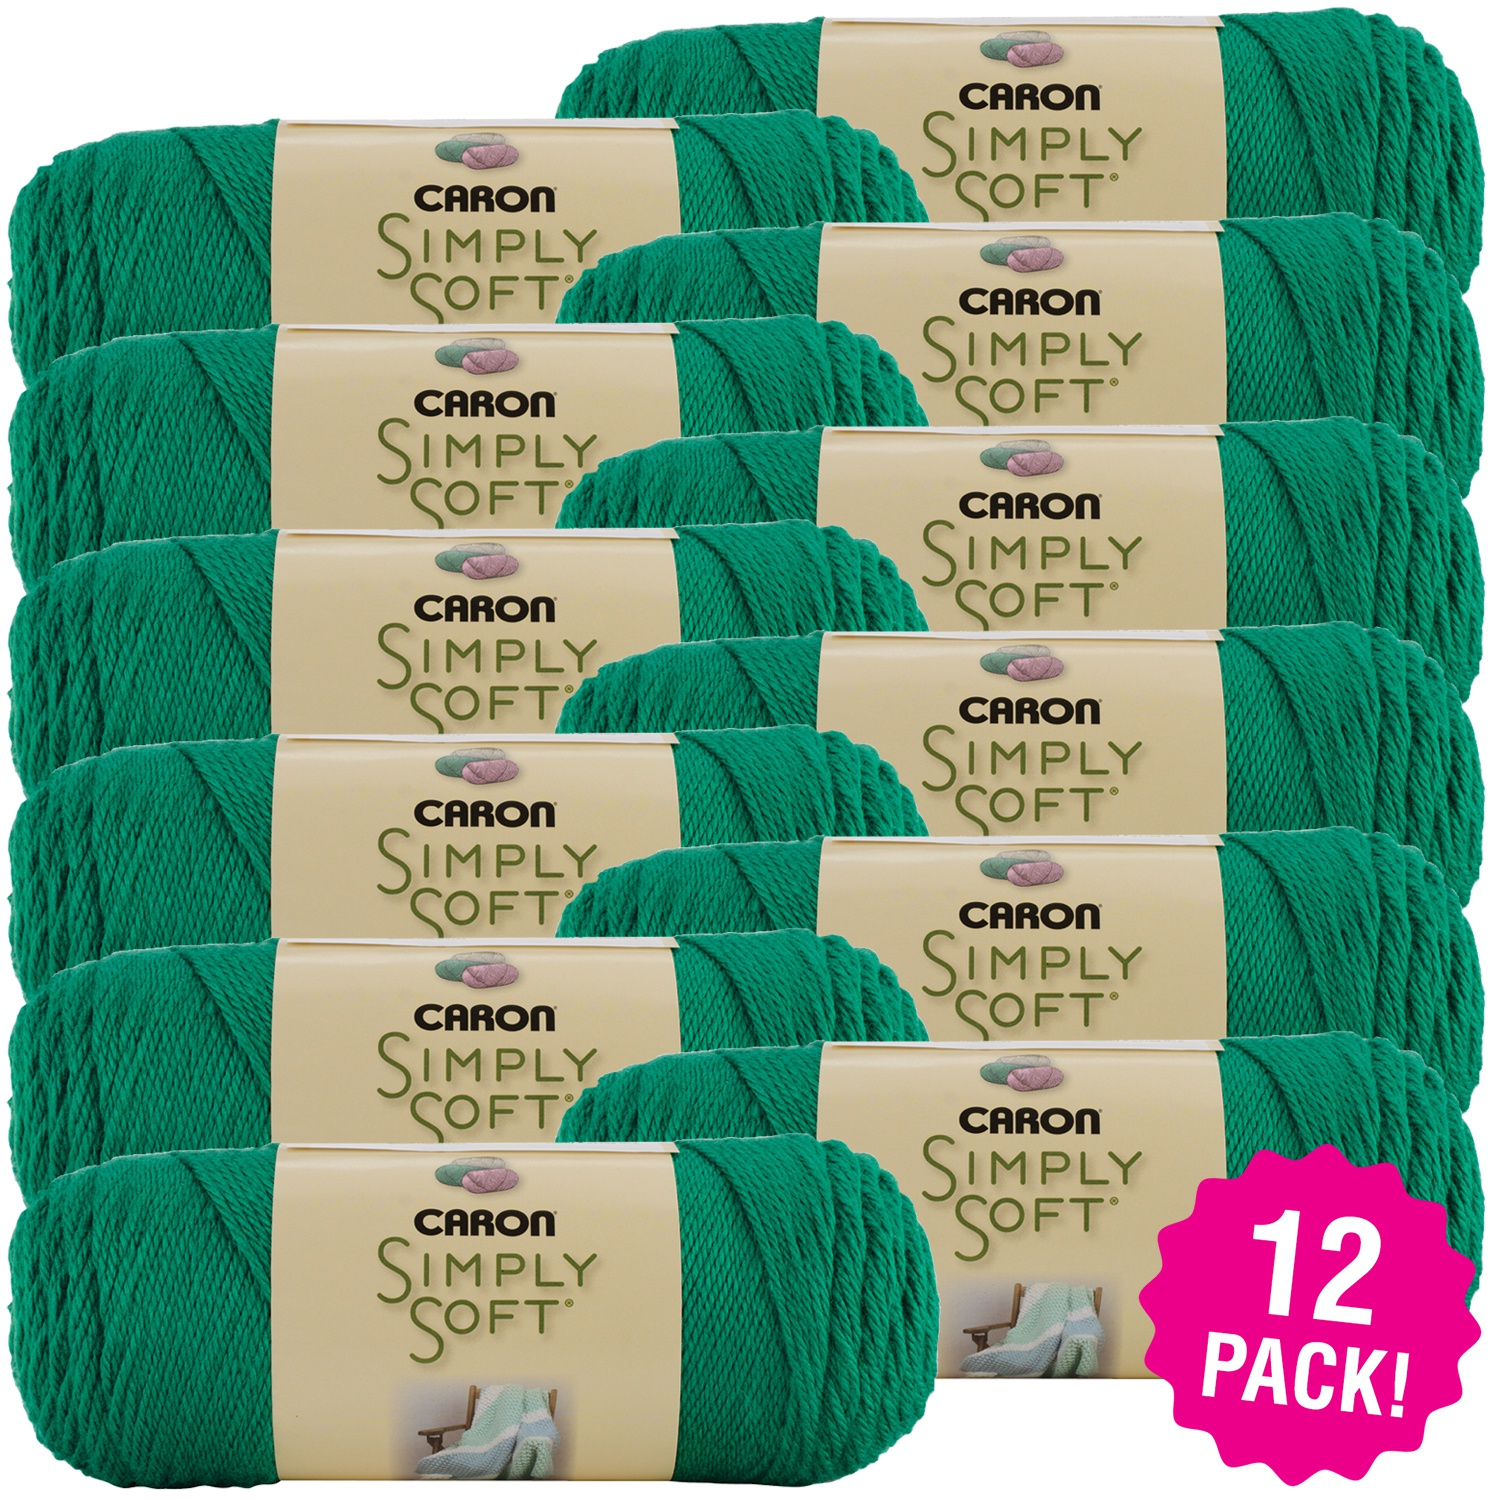 Caron Simply Soft Solids Yarn - Kelly Green, Multipack of 12